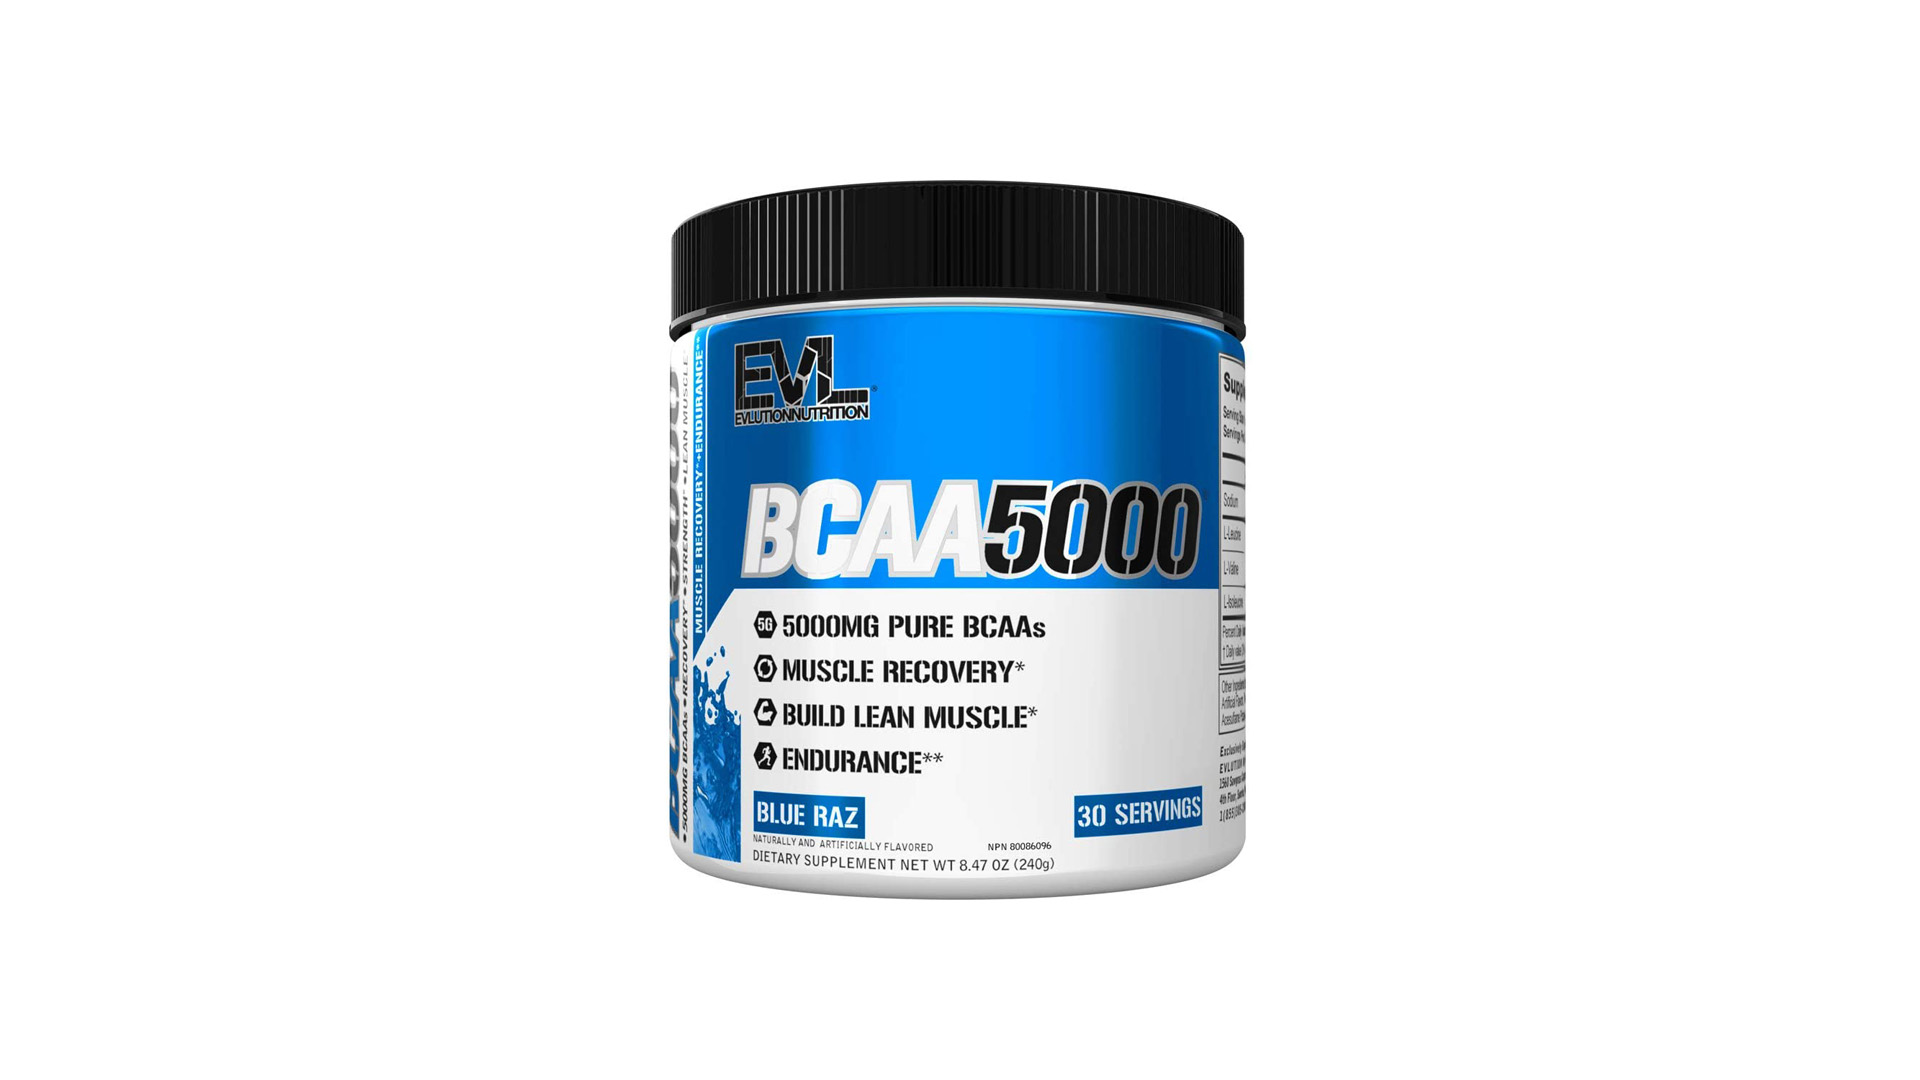 BCAA5000 by Evlution Nutrition